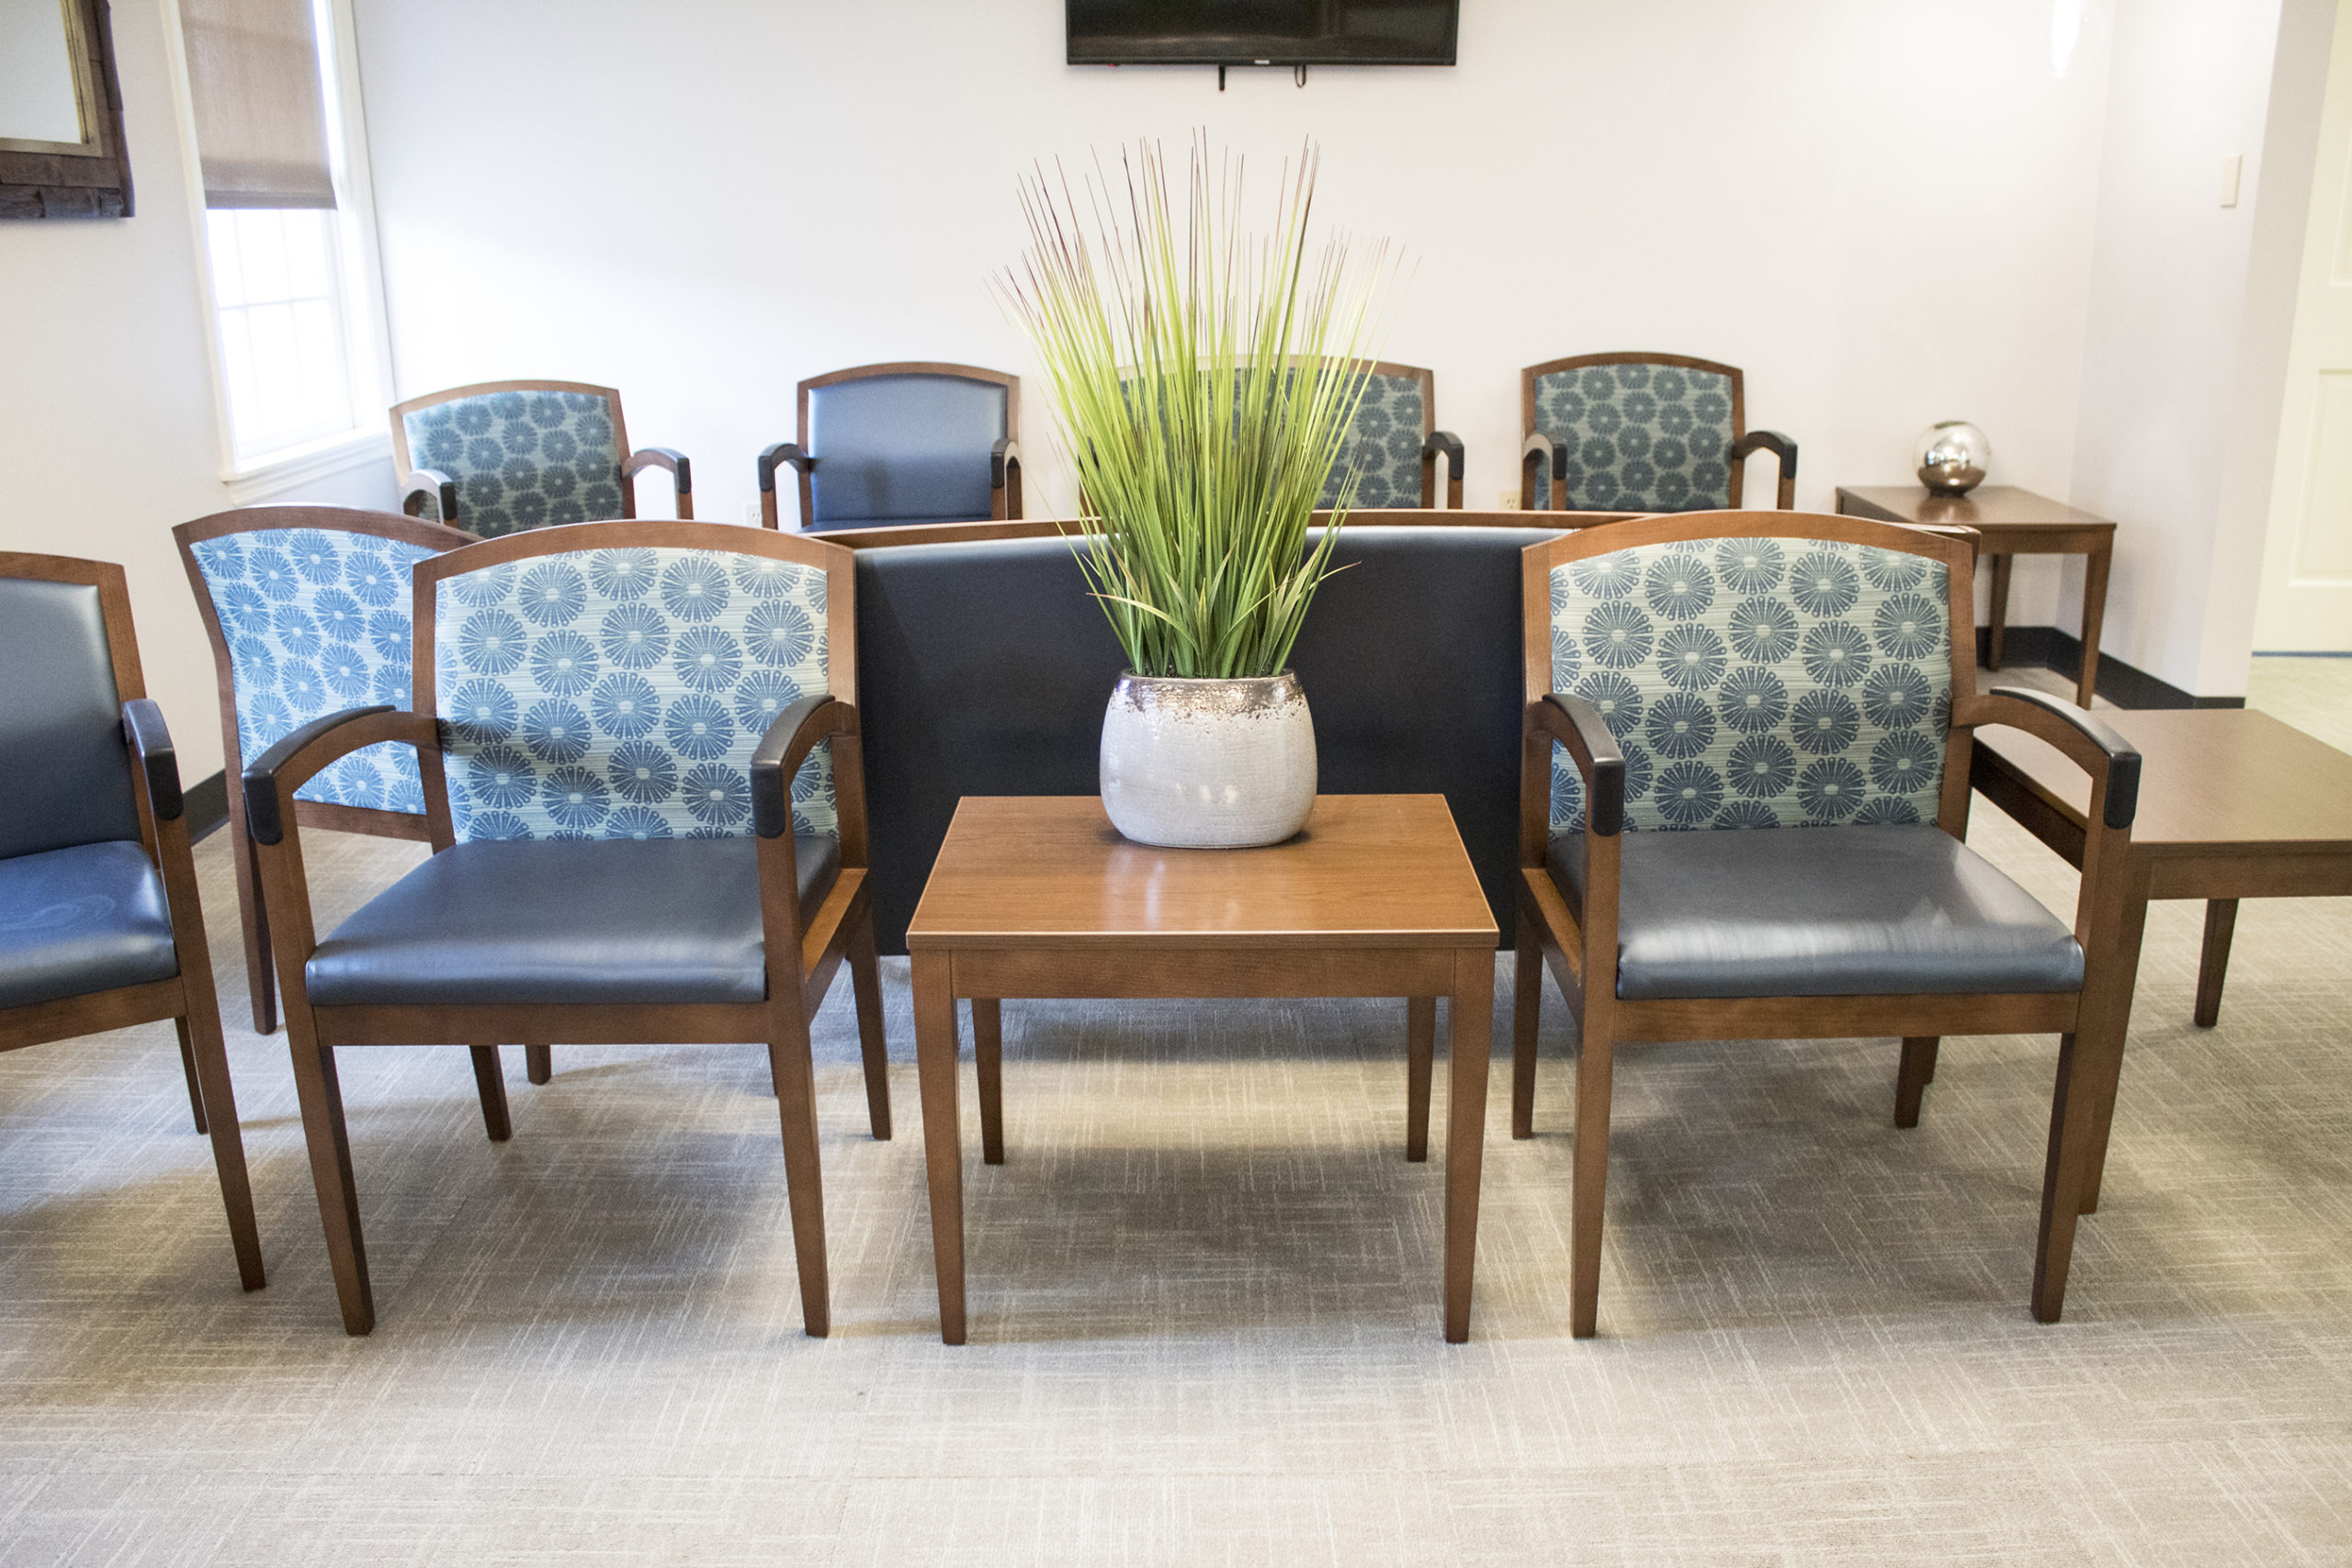 Two Chairs and Table in Waiting Room